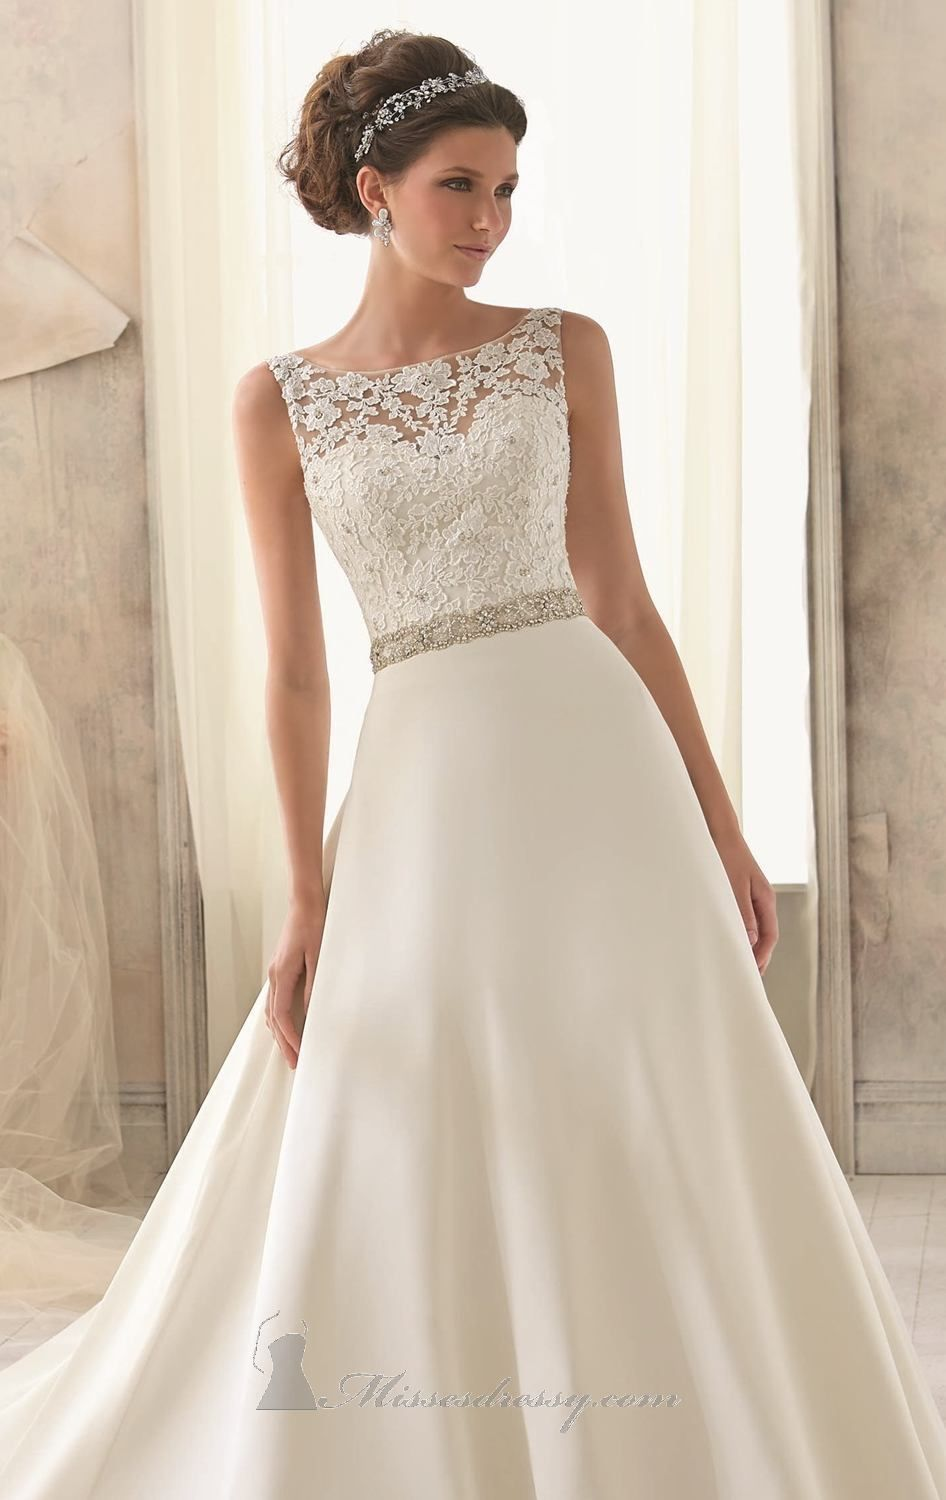 Wedding dress for body type  Gorgeous kind of dressJust need one of those little jackets